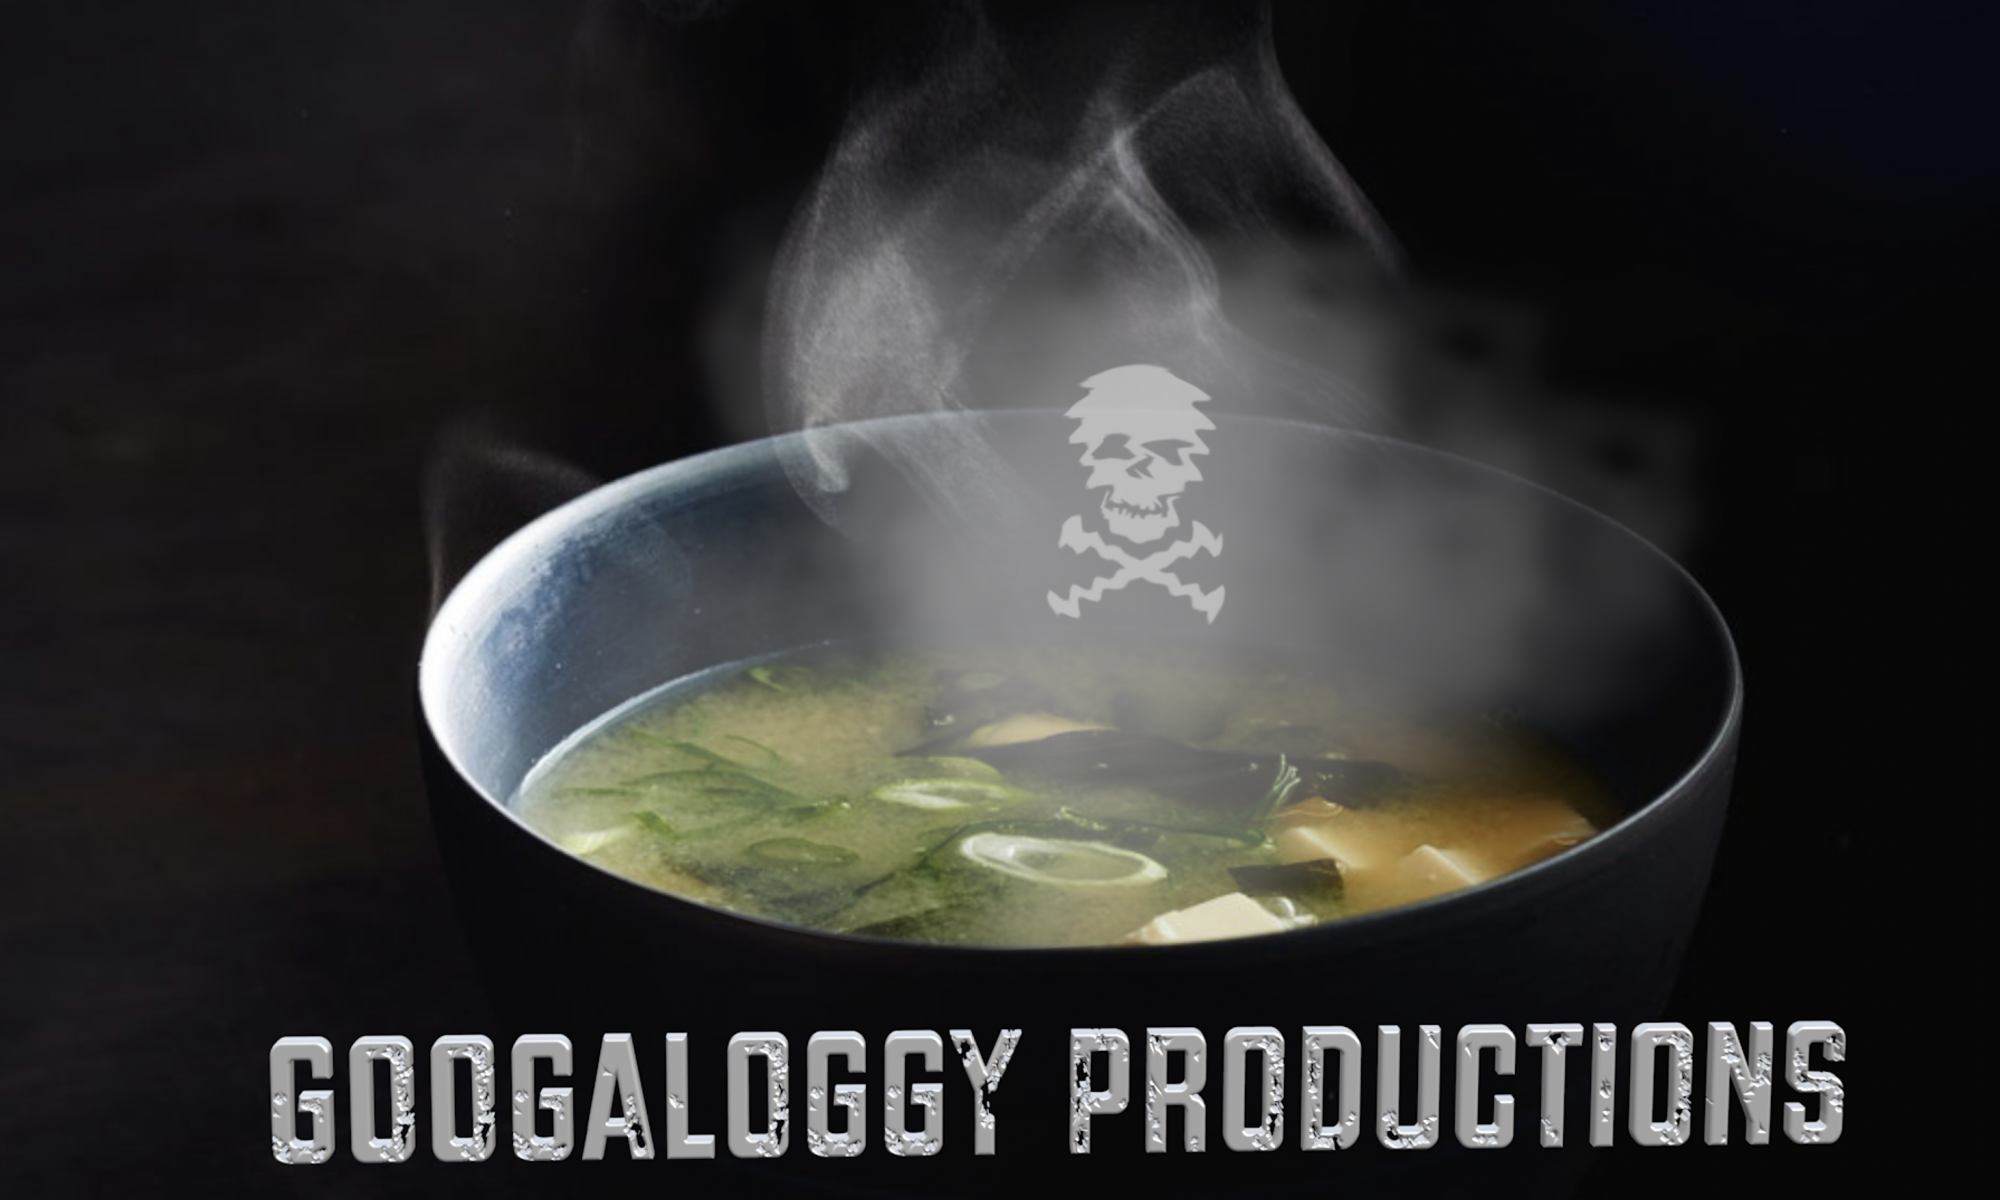 Googaloggy Productions